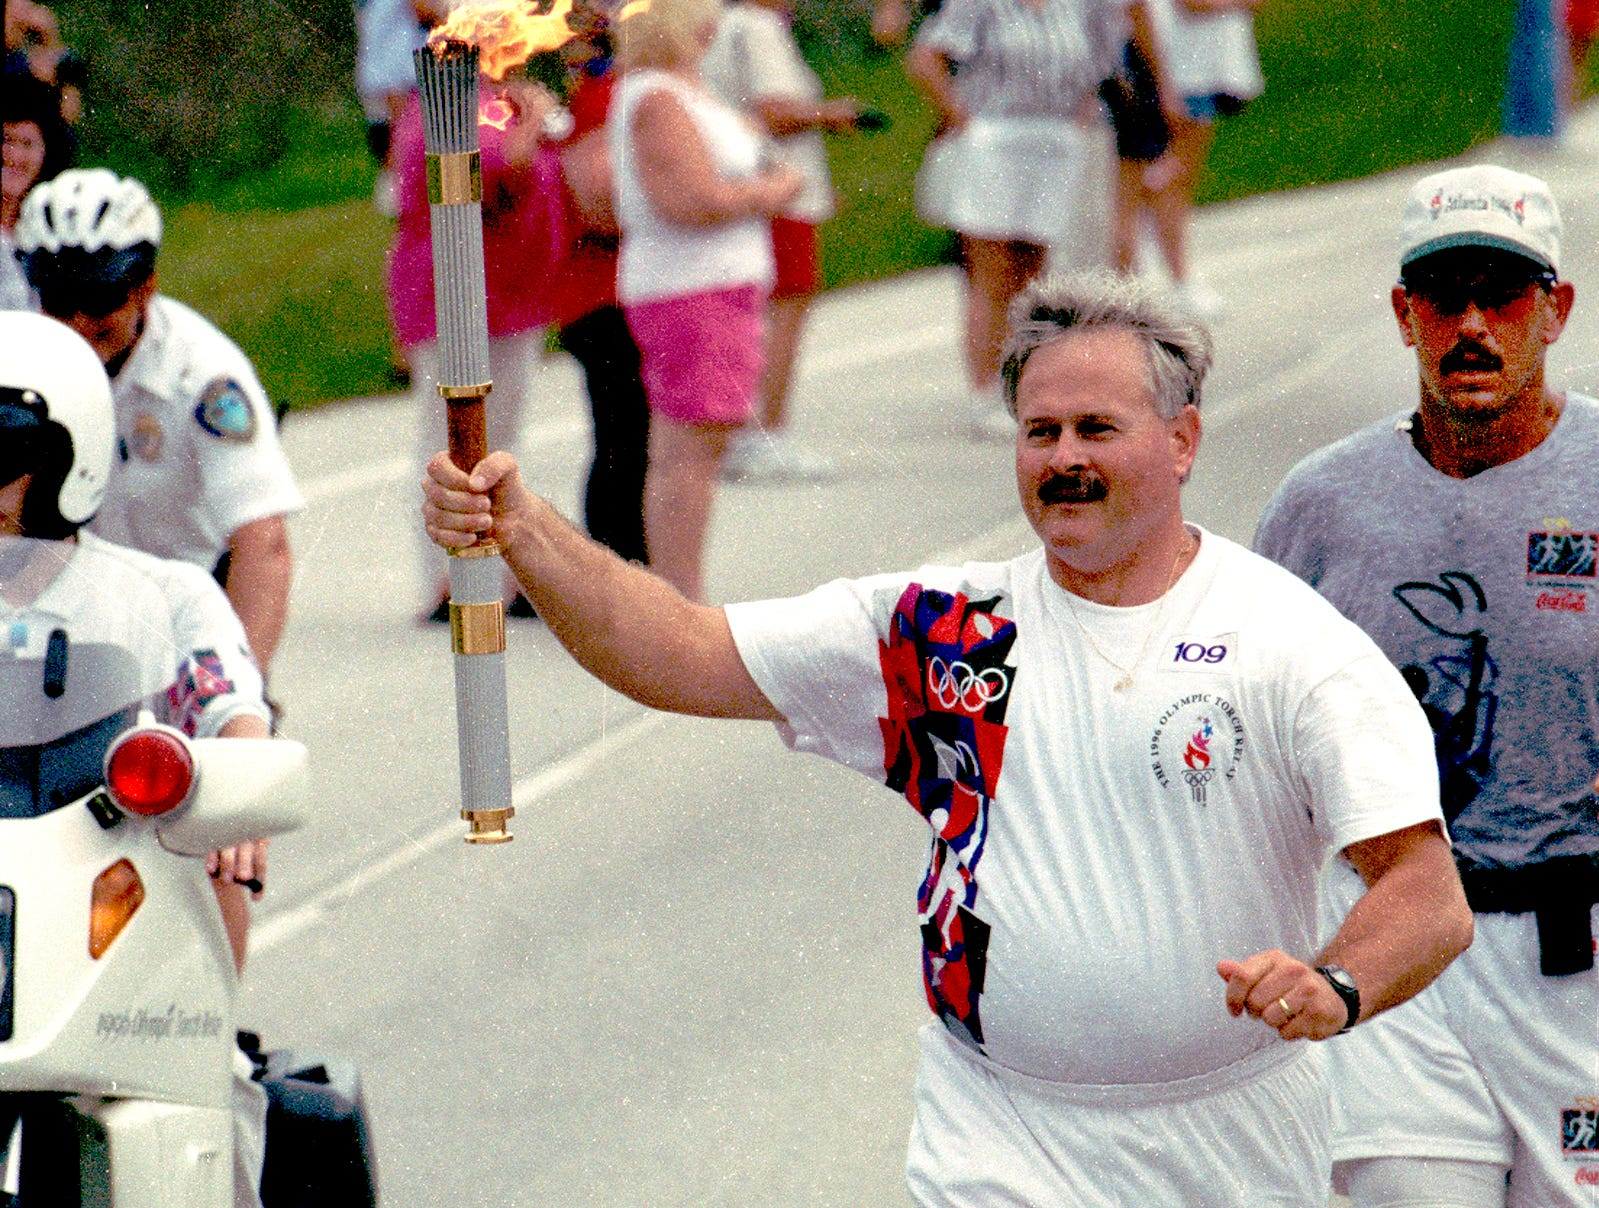 "July 6, 1996 - David Cherry was one of the 54 local torchbearers to make his way through Vero Beach as part of the historic trip through the downtown historic area. ""It's a thrill. The people yelling and cheering - you feel one with the world right at that moment, like there's nothing you can't do,"" said Cherry."